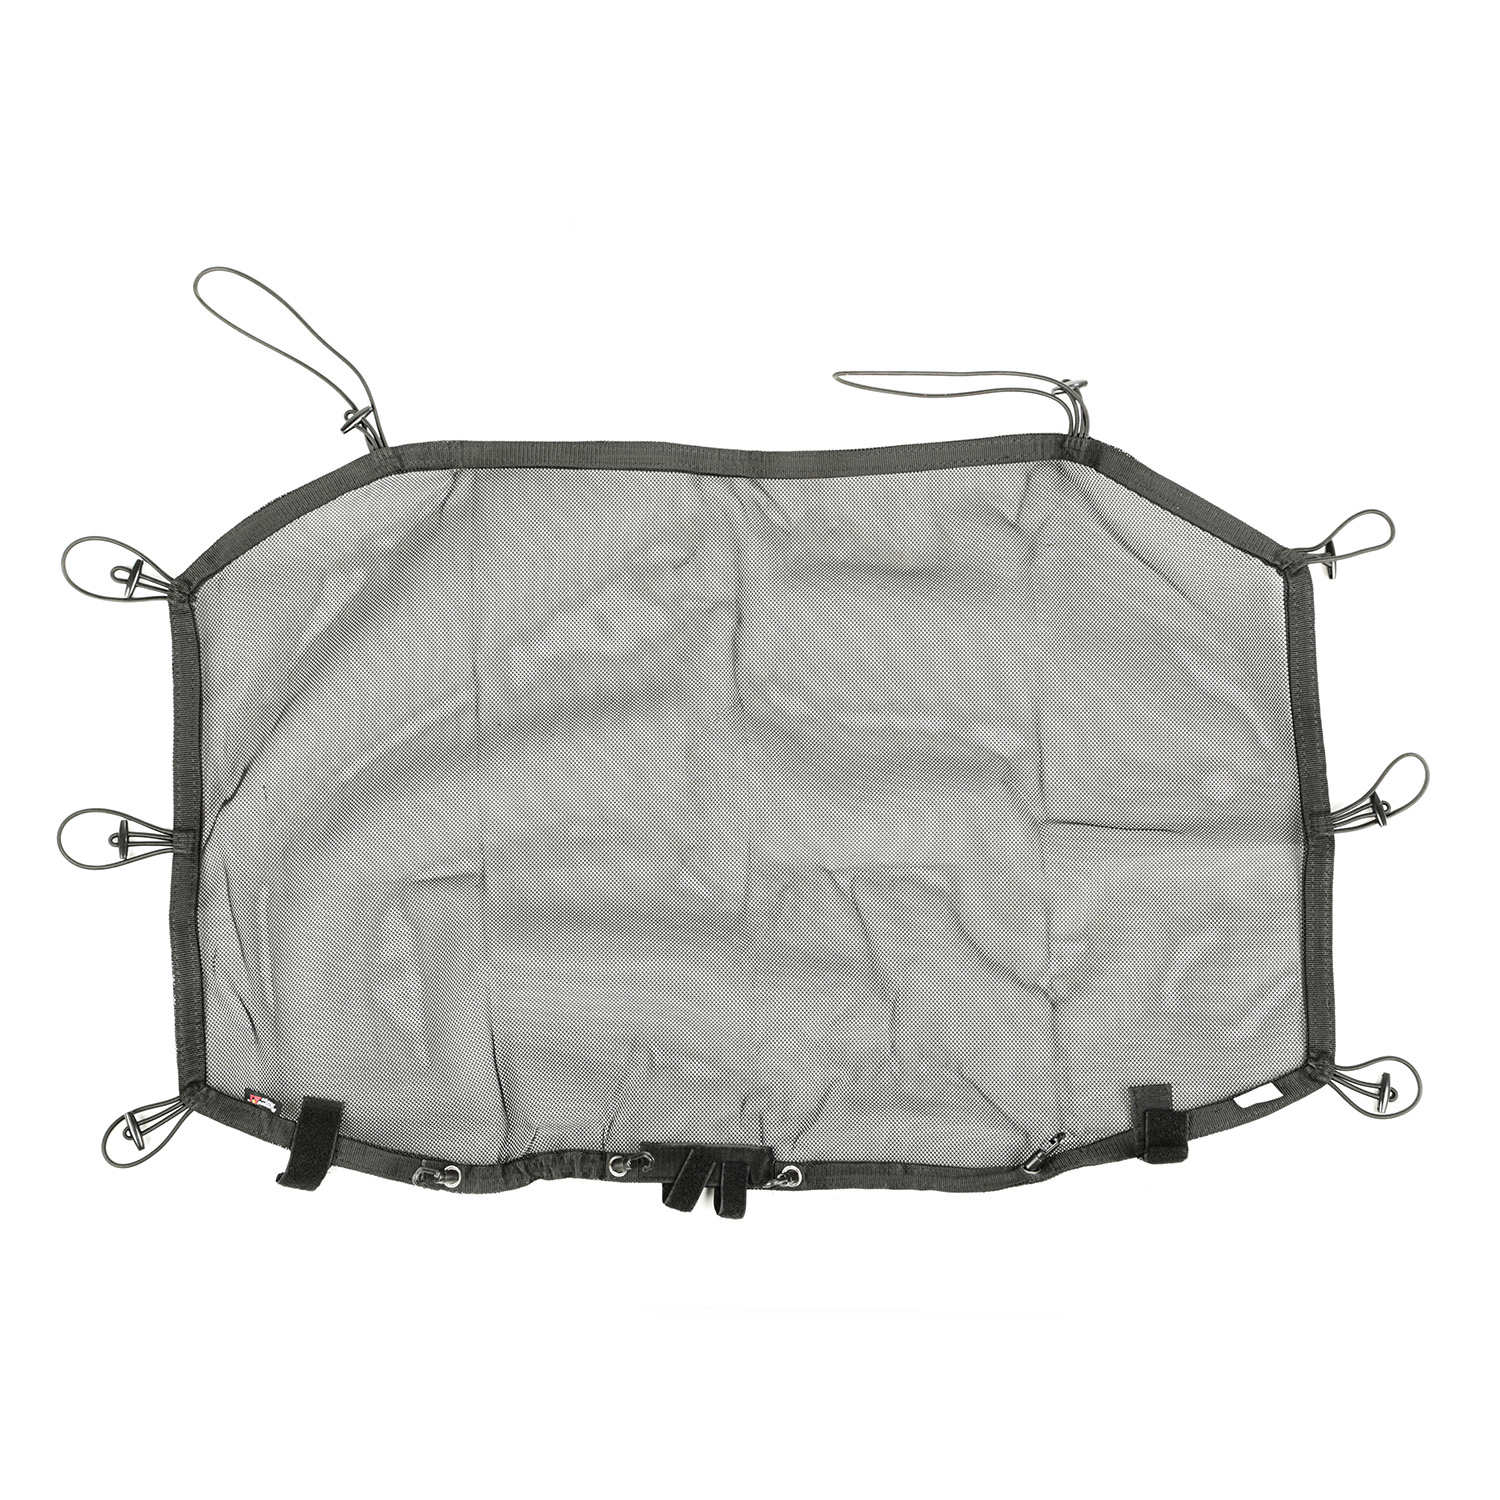 Rugged Ridge Hardtop Sun Shade, Black - JK